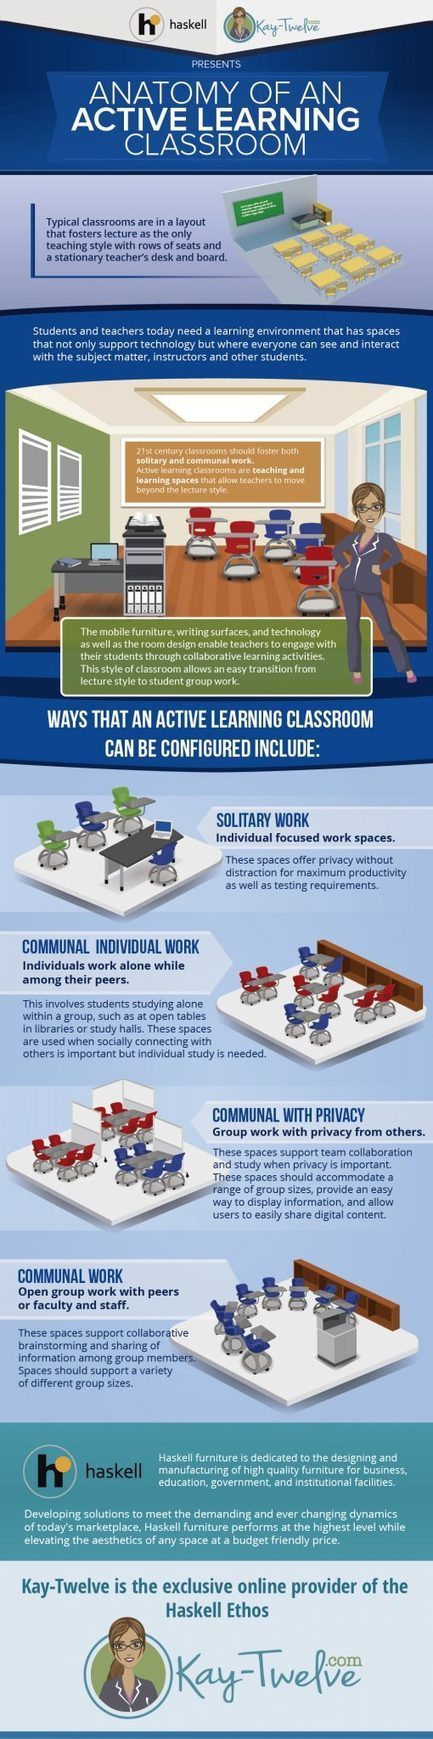 Anatomy of an Active Learning Classroom Infographic | 21st Century learning | Scoop.it